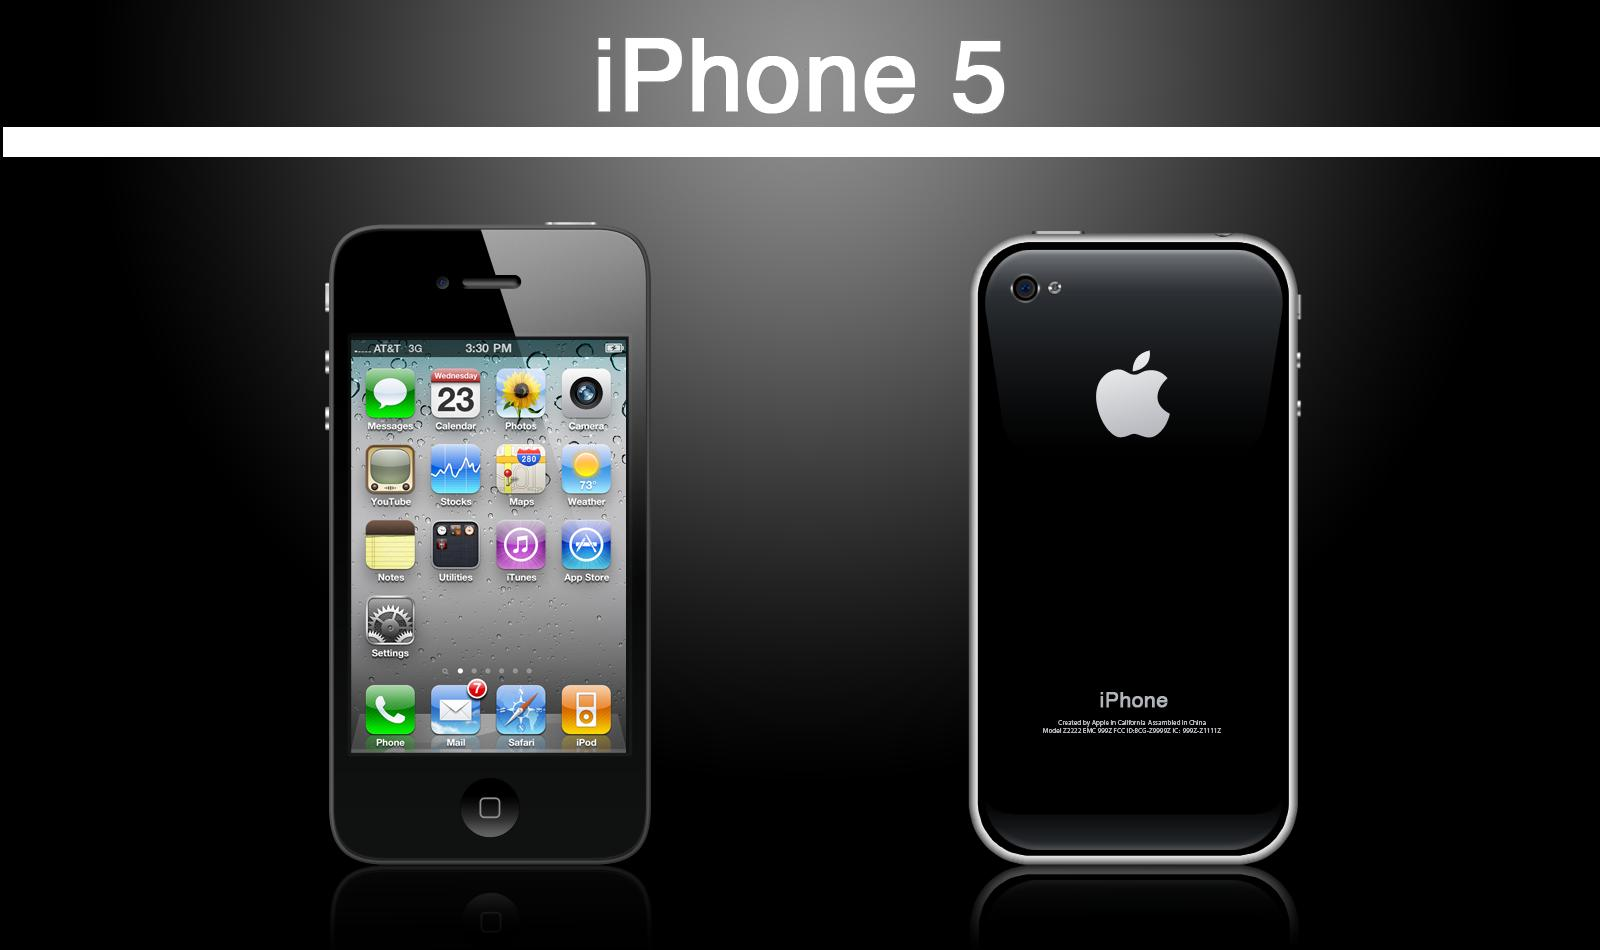 imagenes de iphone